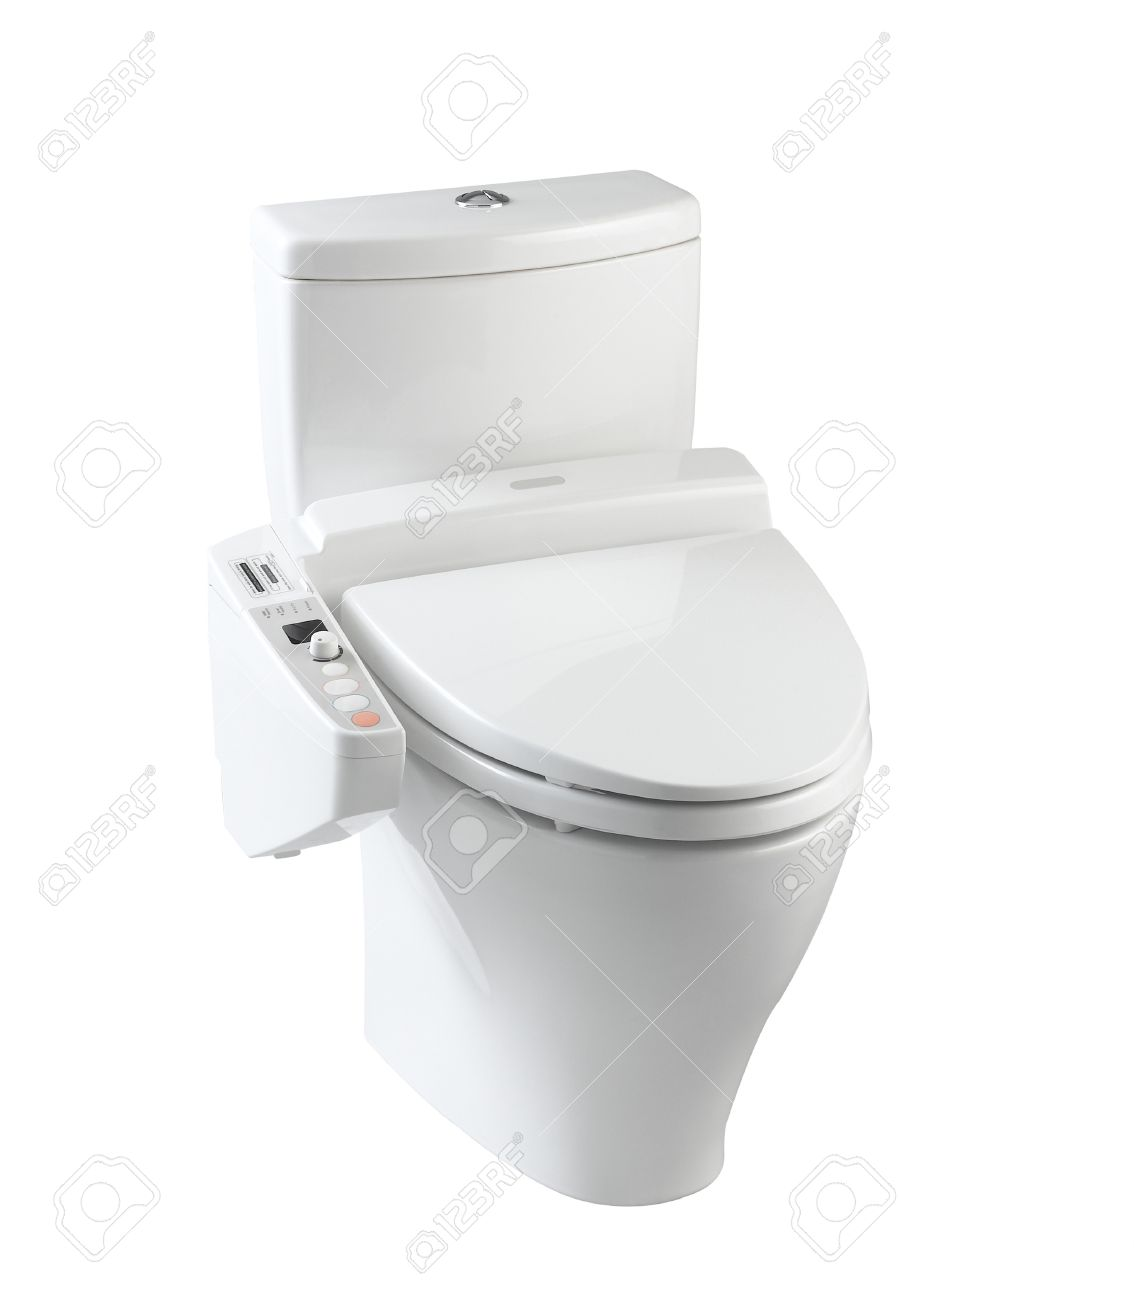 hygienic and high technology of the toilet bowl for modern  - hygienic and high technology of the toilet bowl for modern bathroom stockphoto